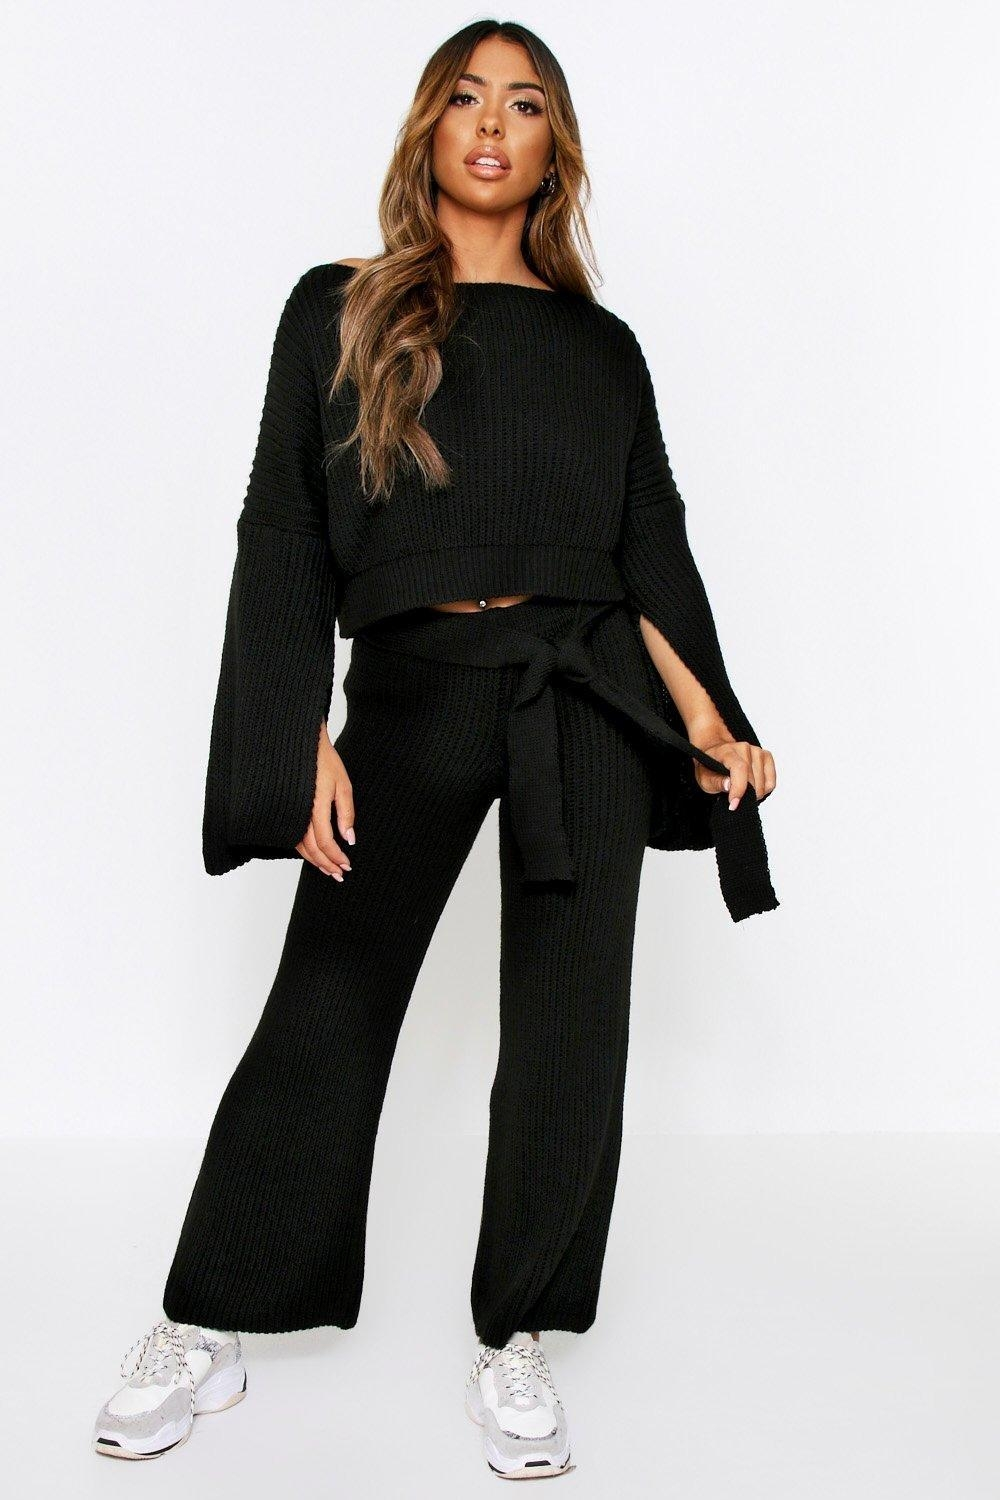 Knitted Trouser & sweater Co Ord, Black